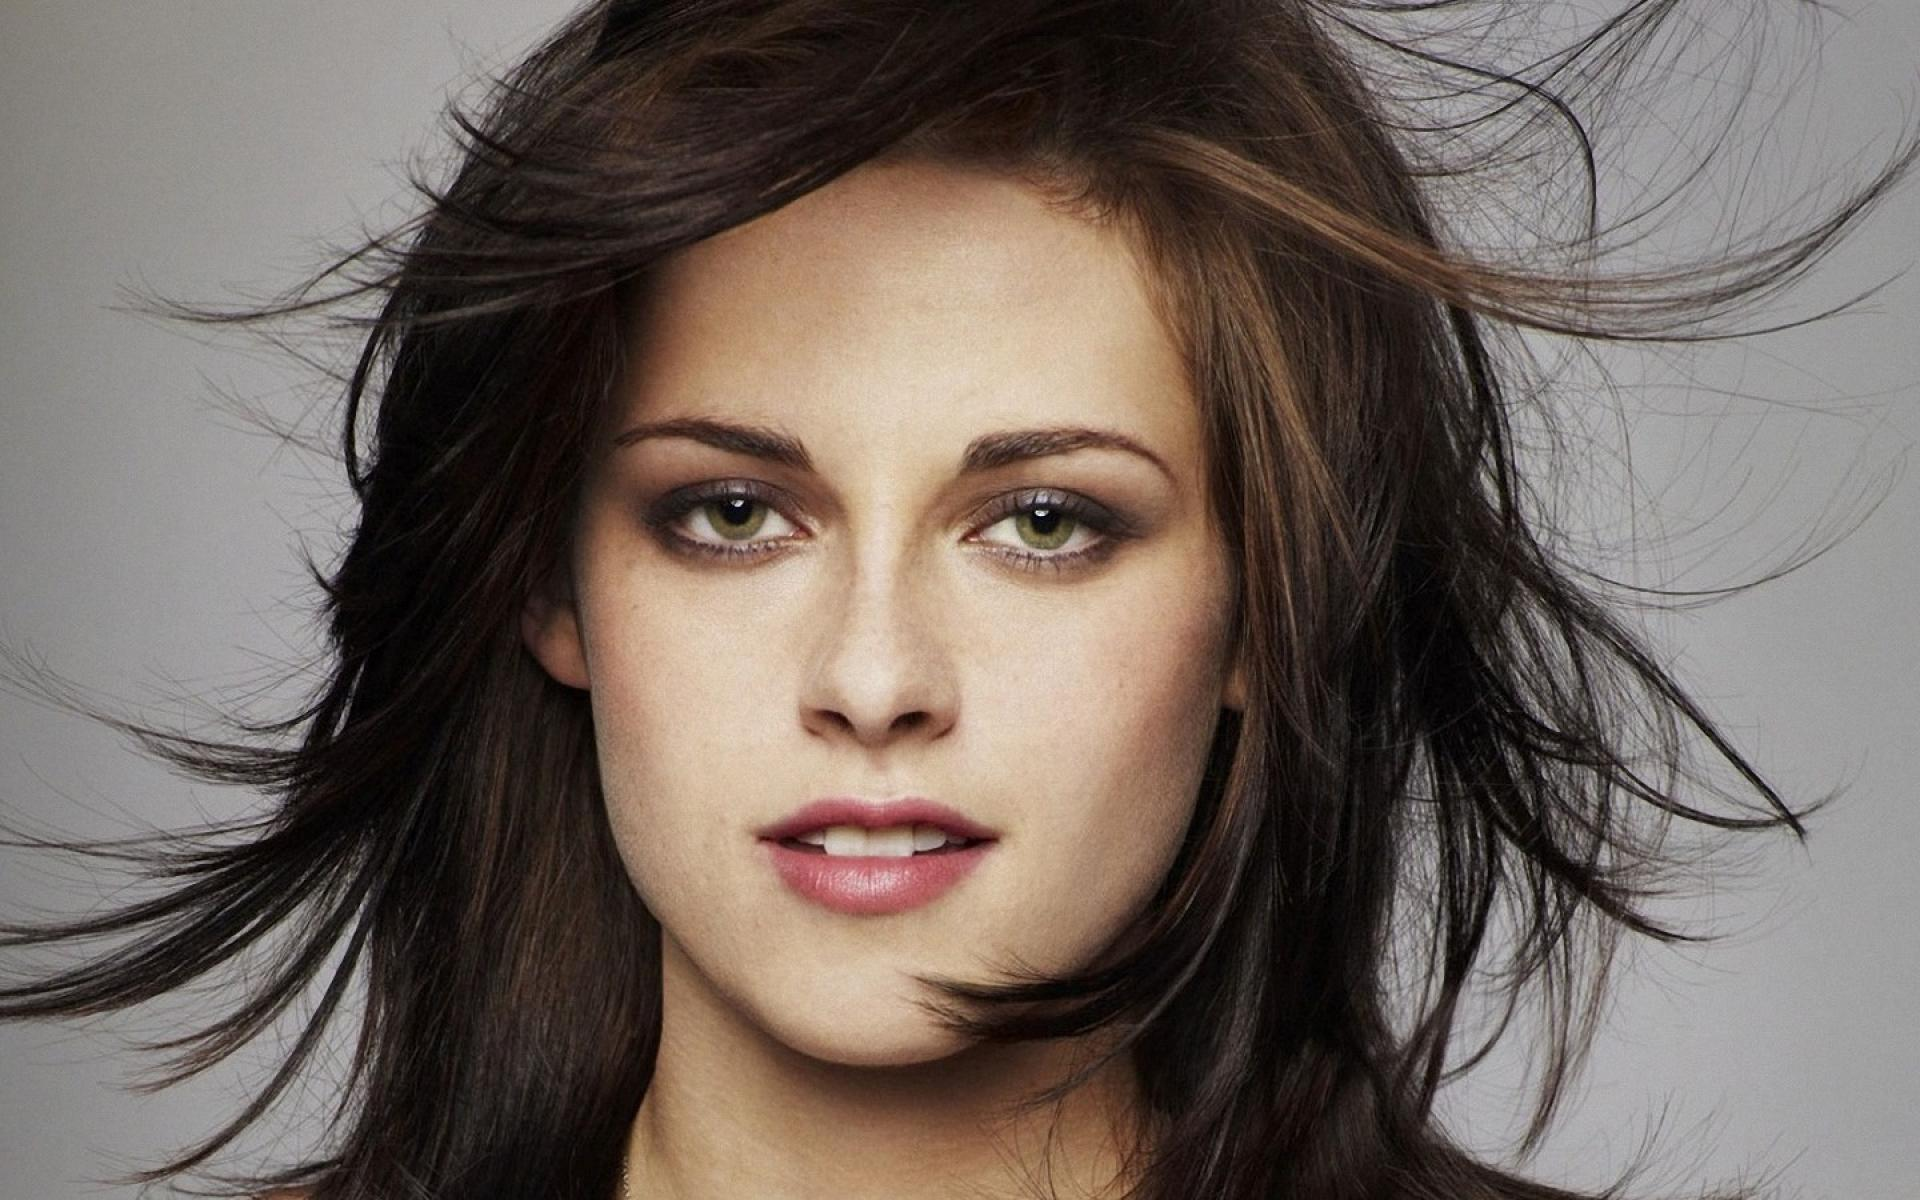 Kristen stewart wallpapers high resolution and quality - High resolution wallpaper celebrity ...